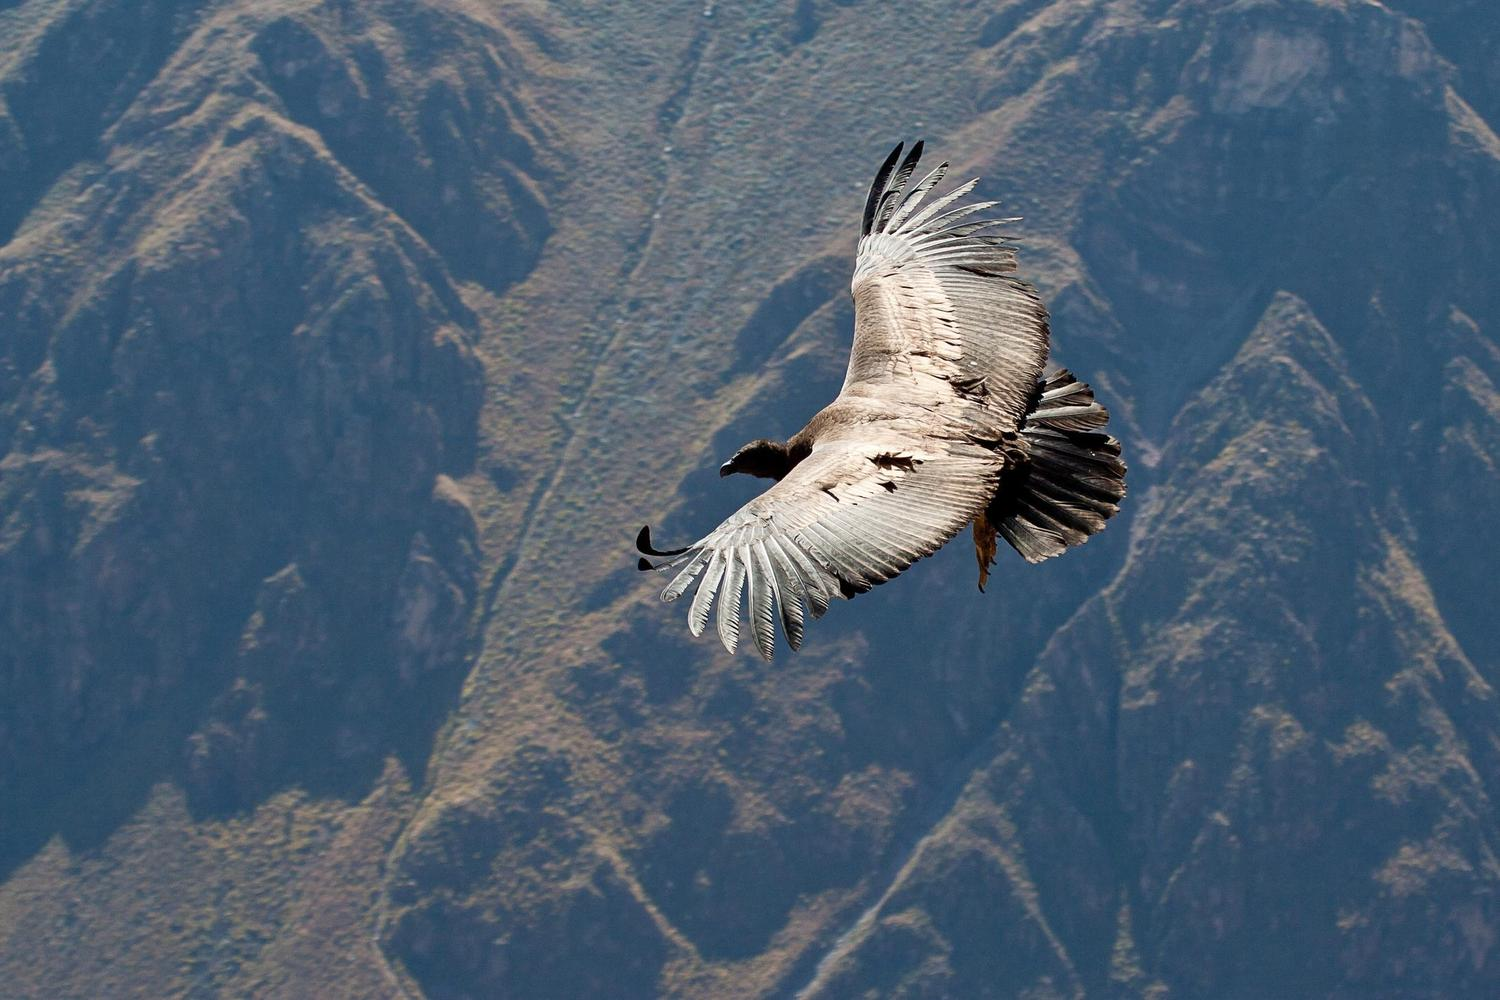 A condor swooping over the Colca Canyon, Peru